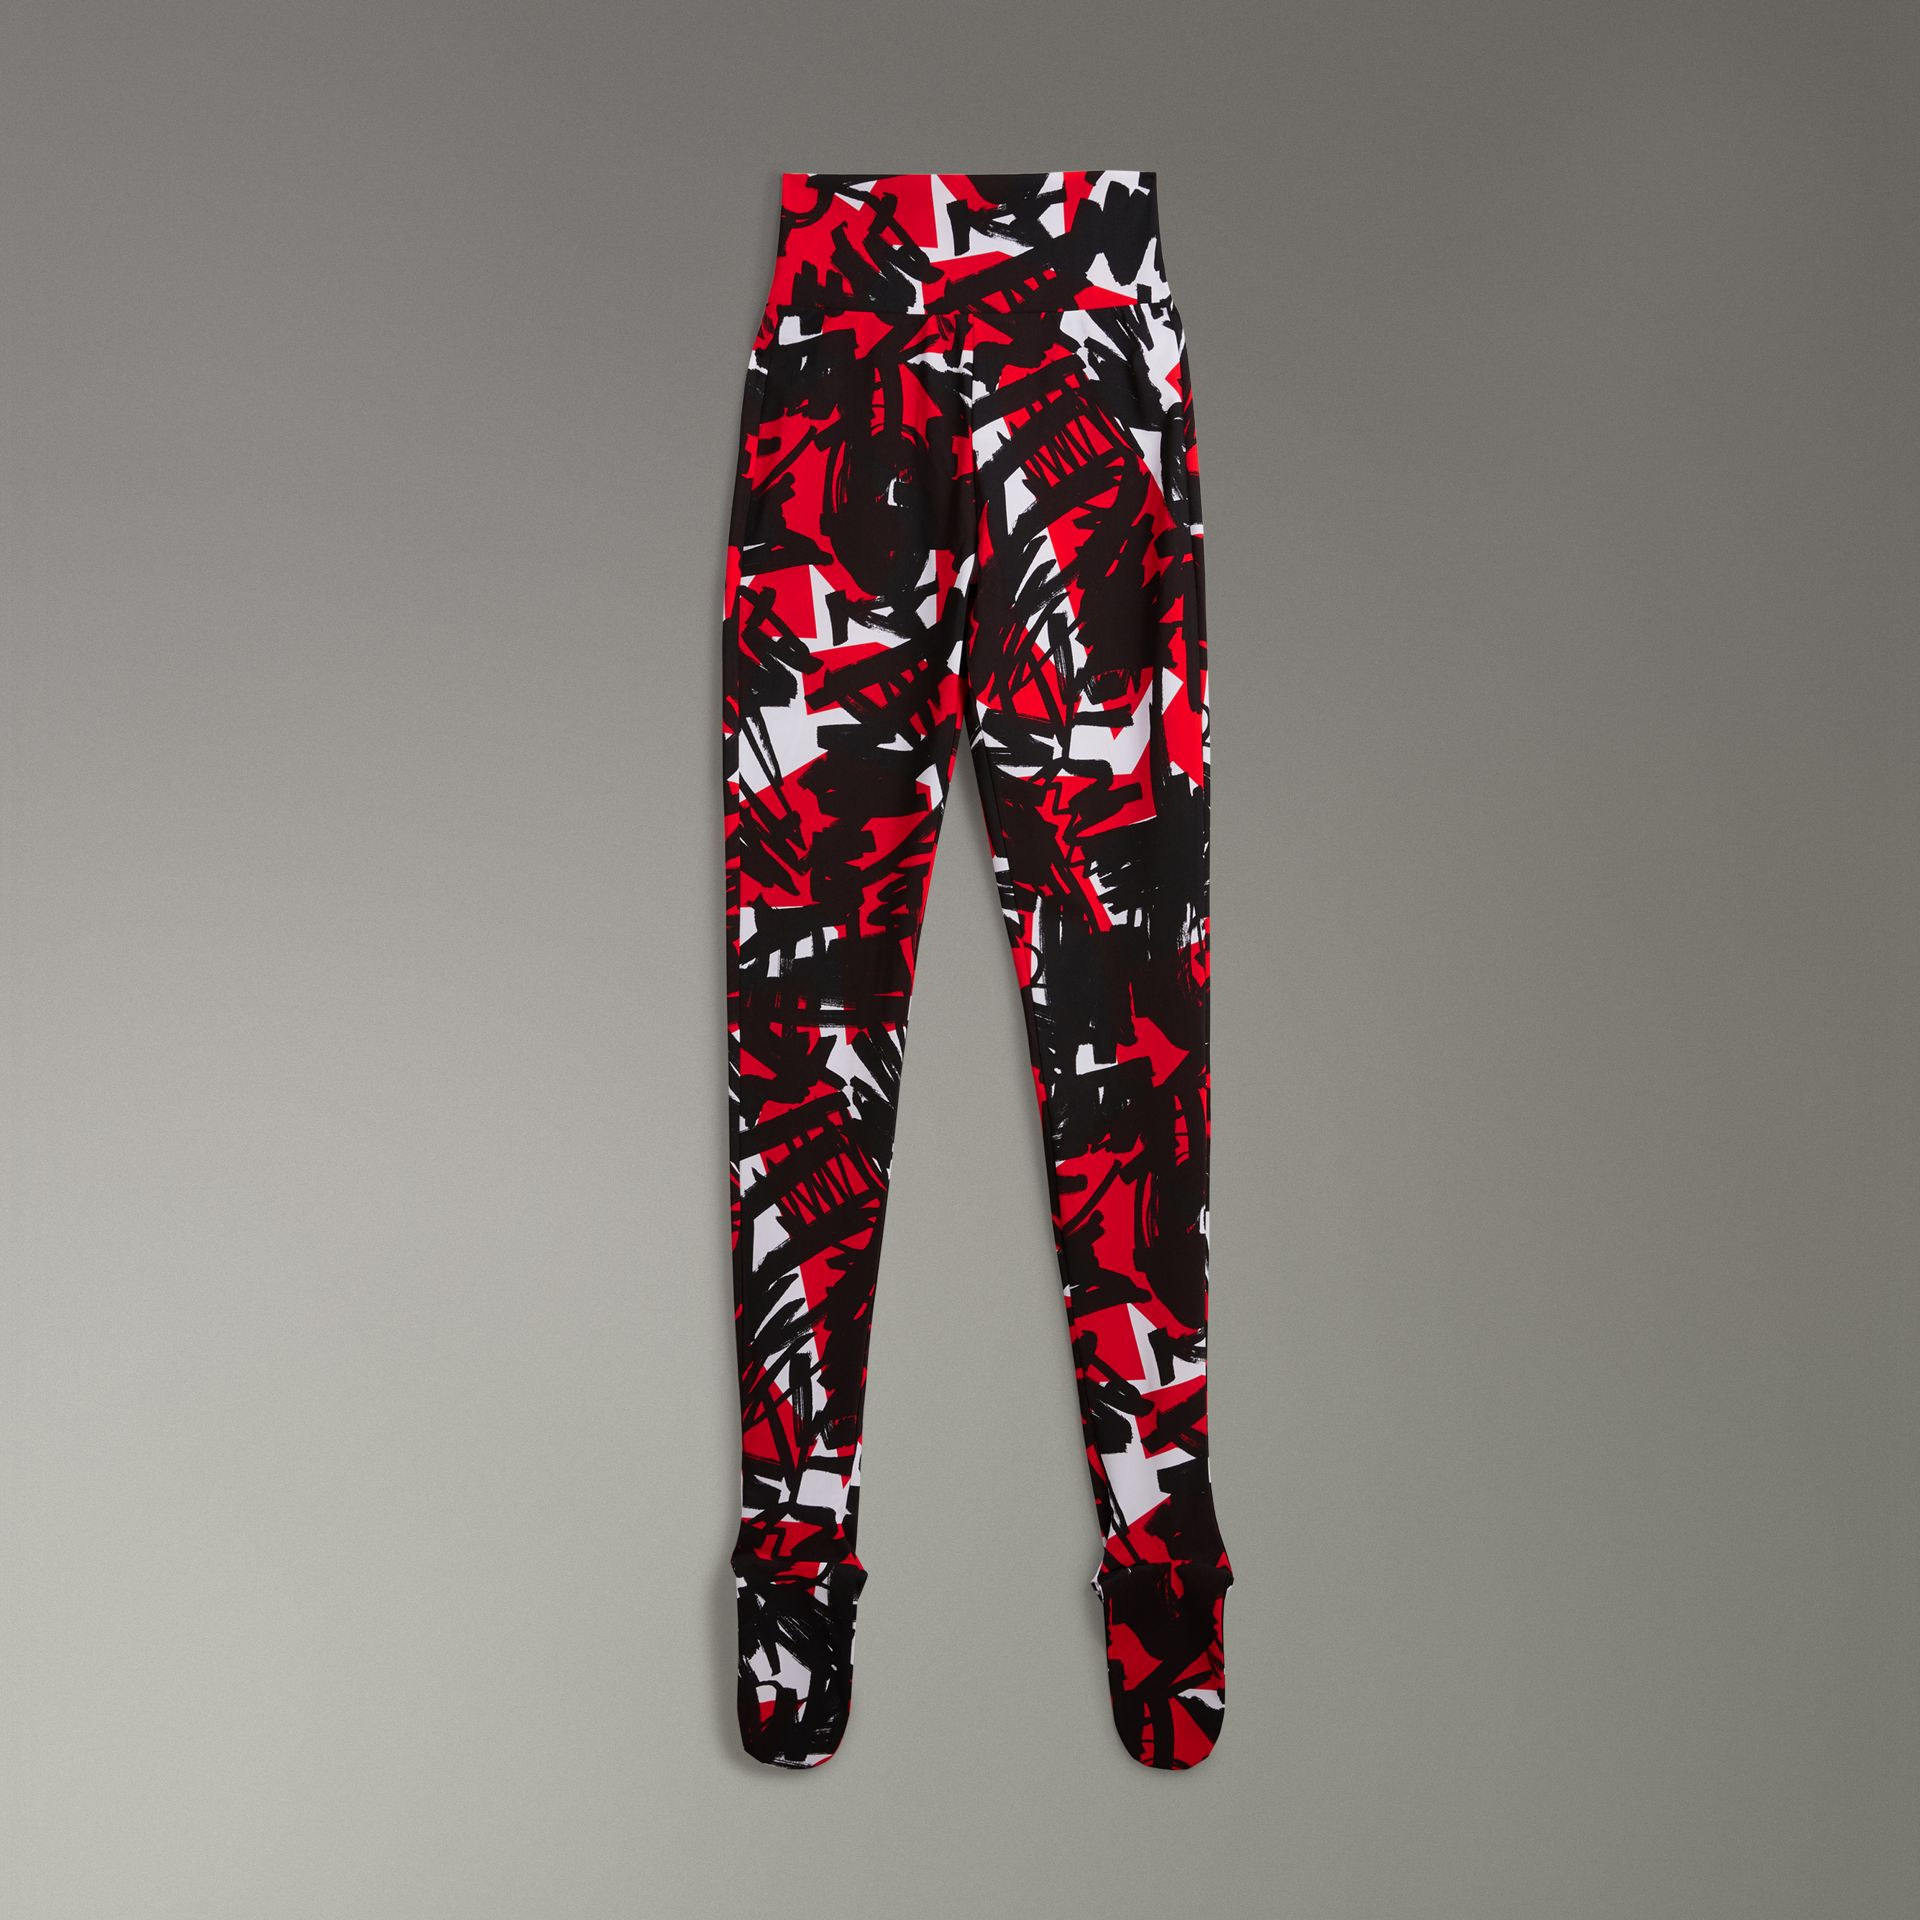 Graffiti Print Leggings in Bright Red - Women | Burberry Australia - gallery image 3